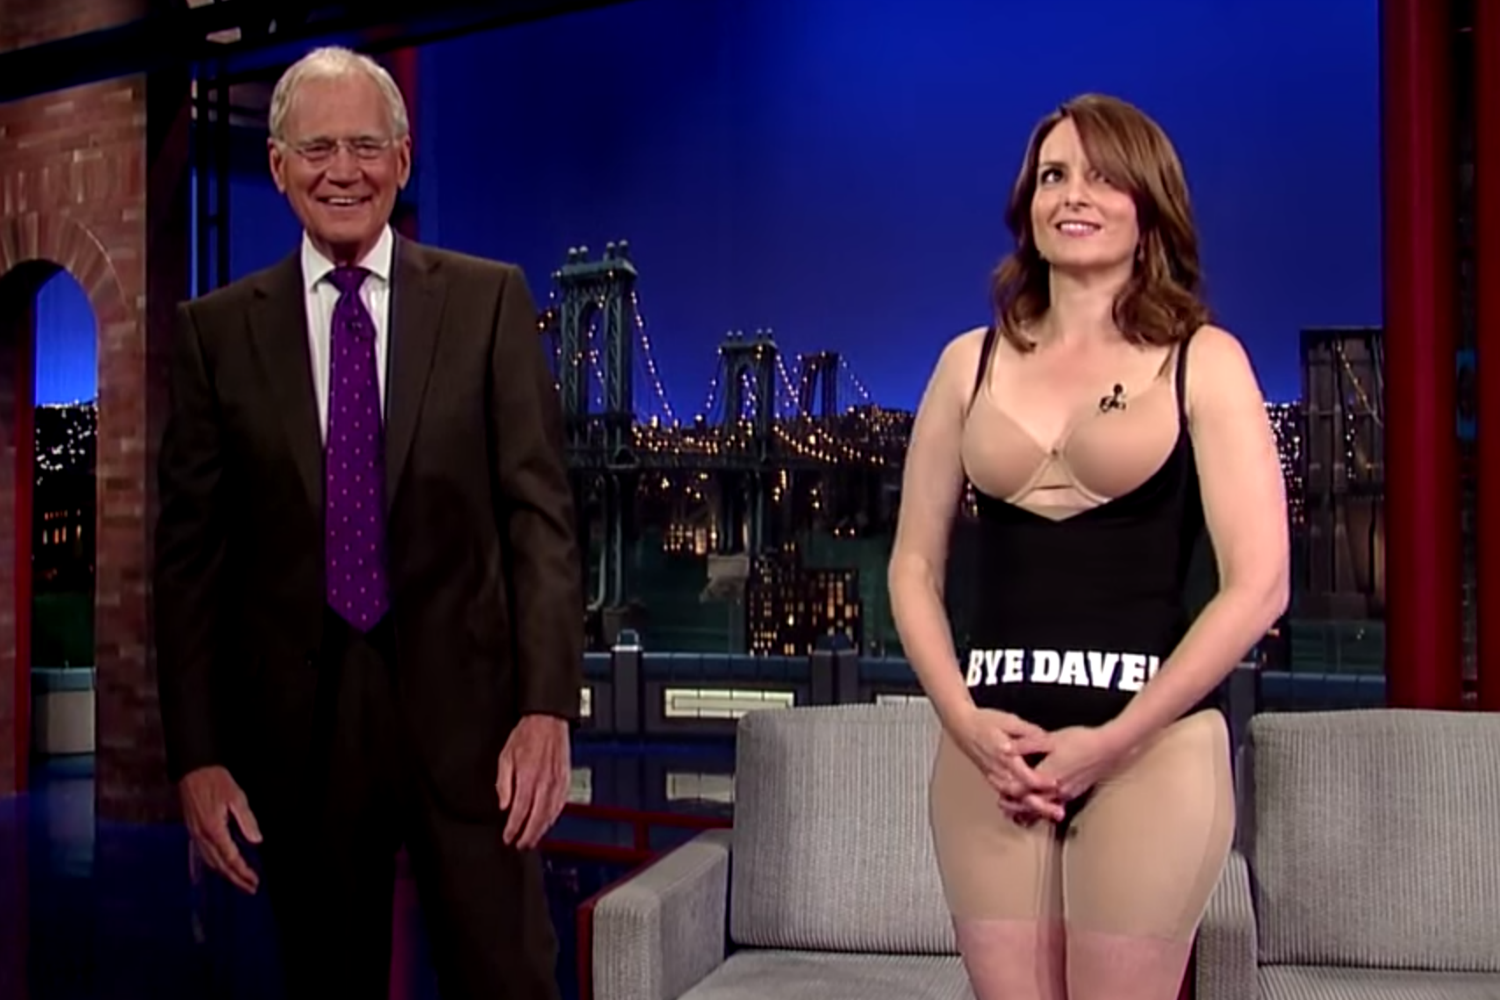 tina-fey-letterman-dress-2-1500x1000